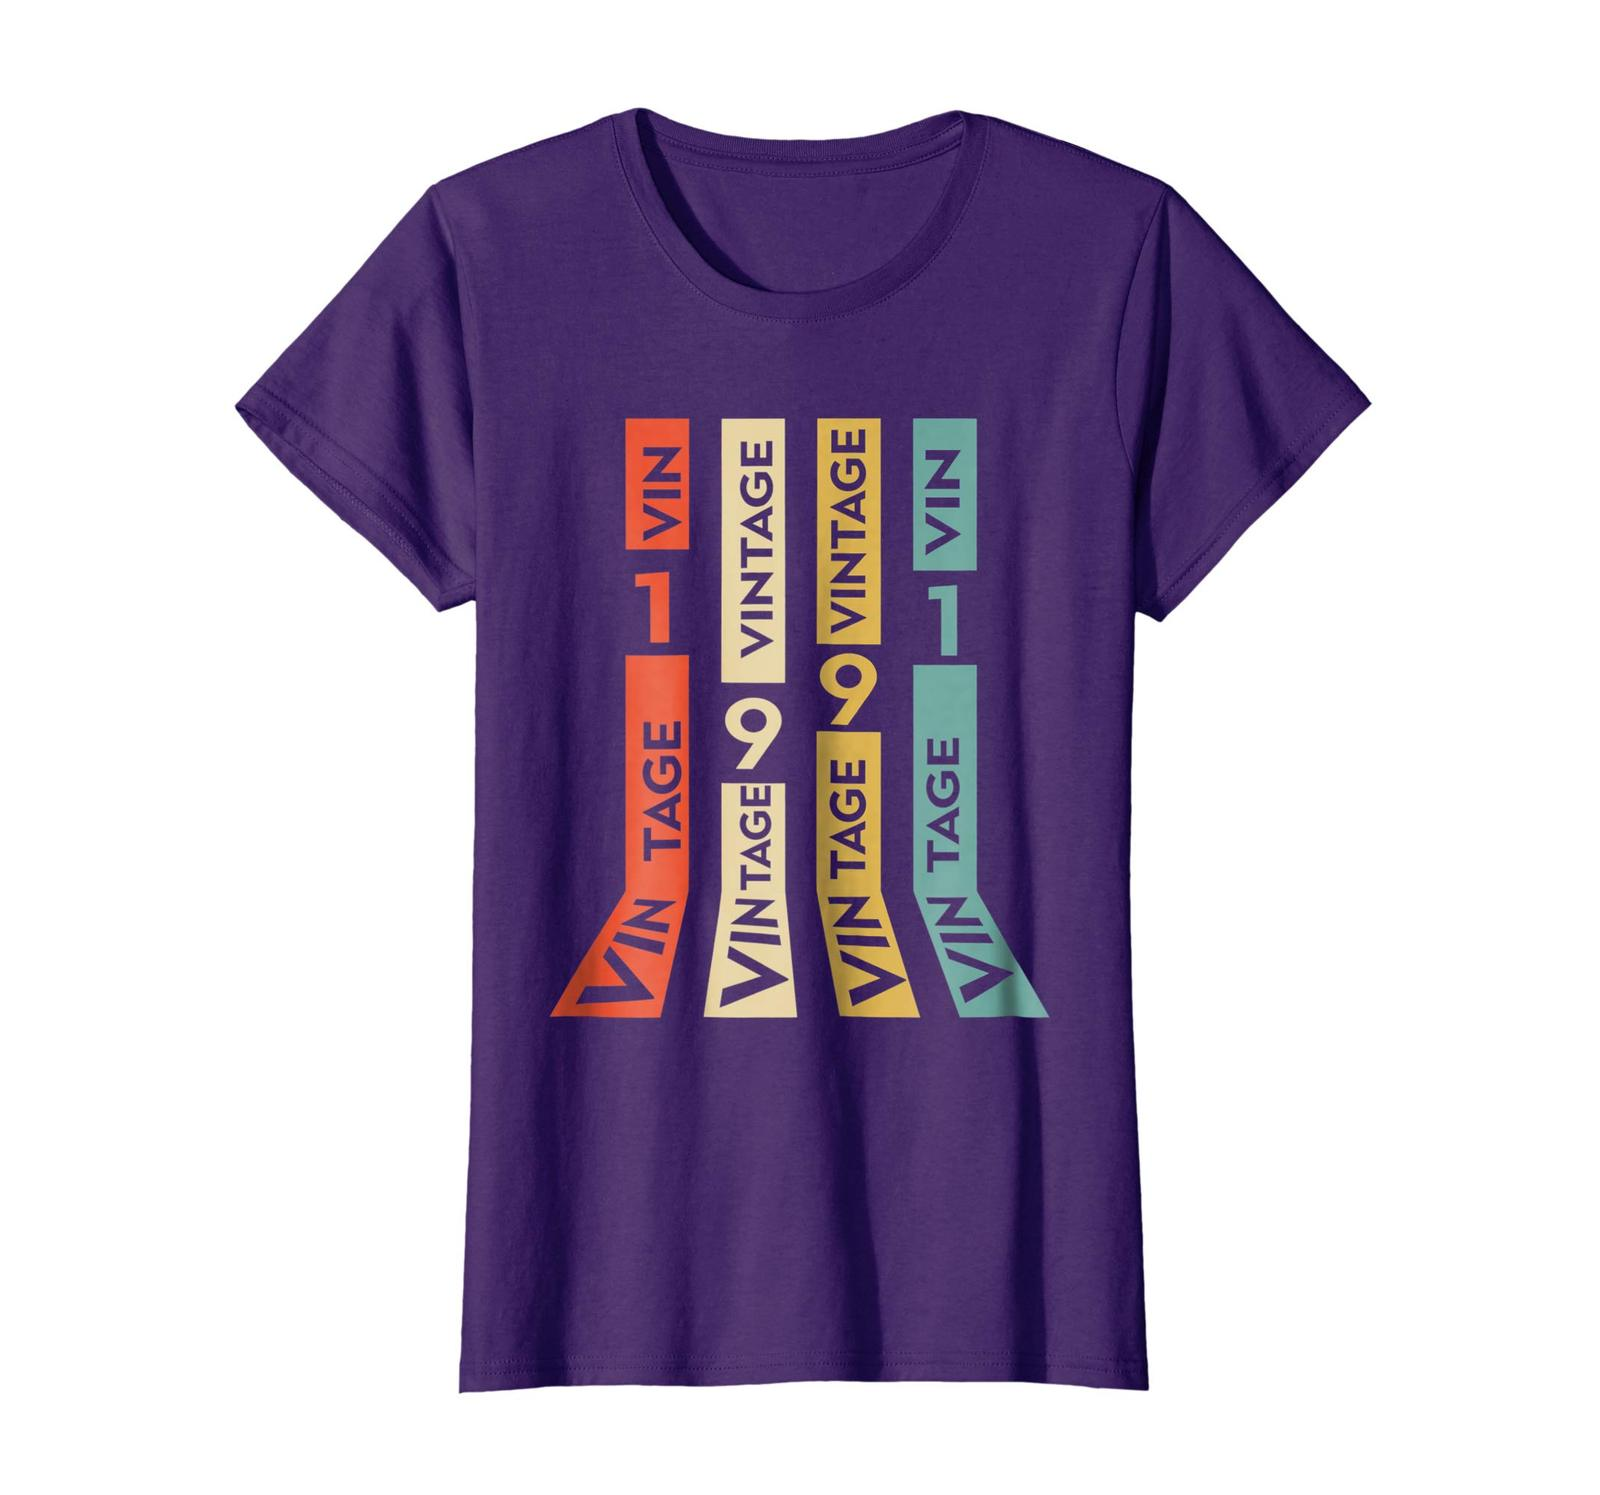 Dad Shirts -  Retro Classic Vintage Legends Born In 1991 Gift 27 Years Old Wowen